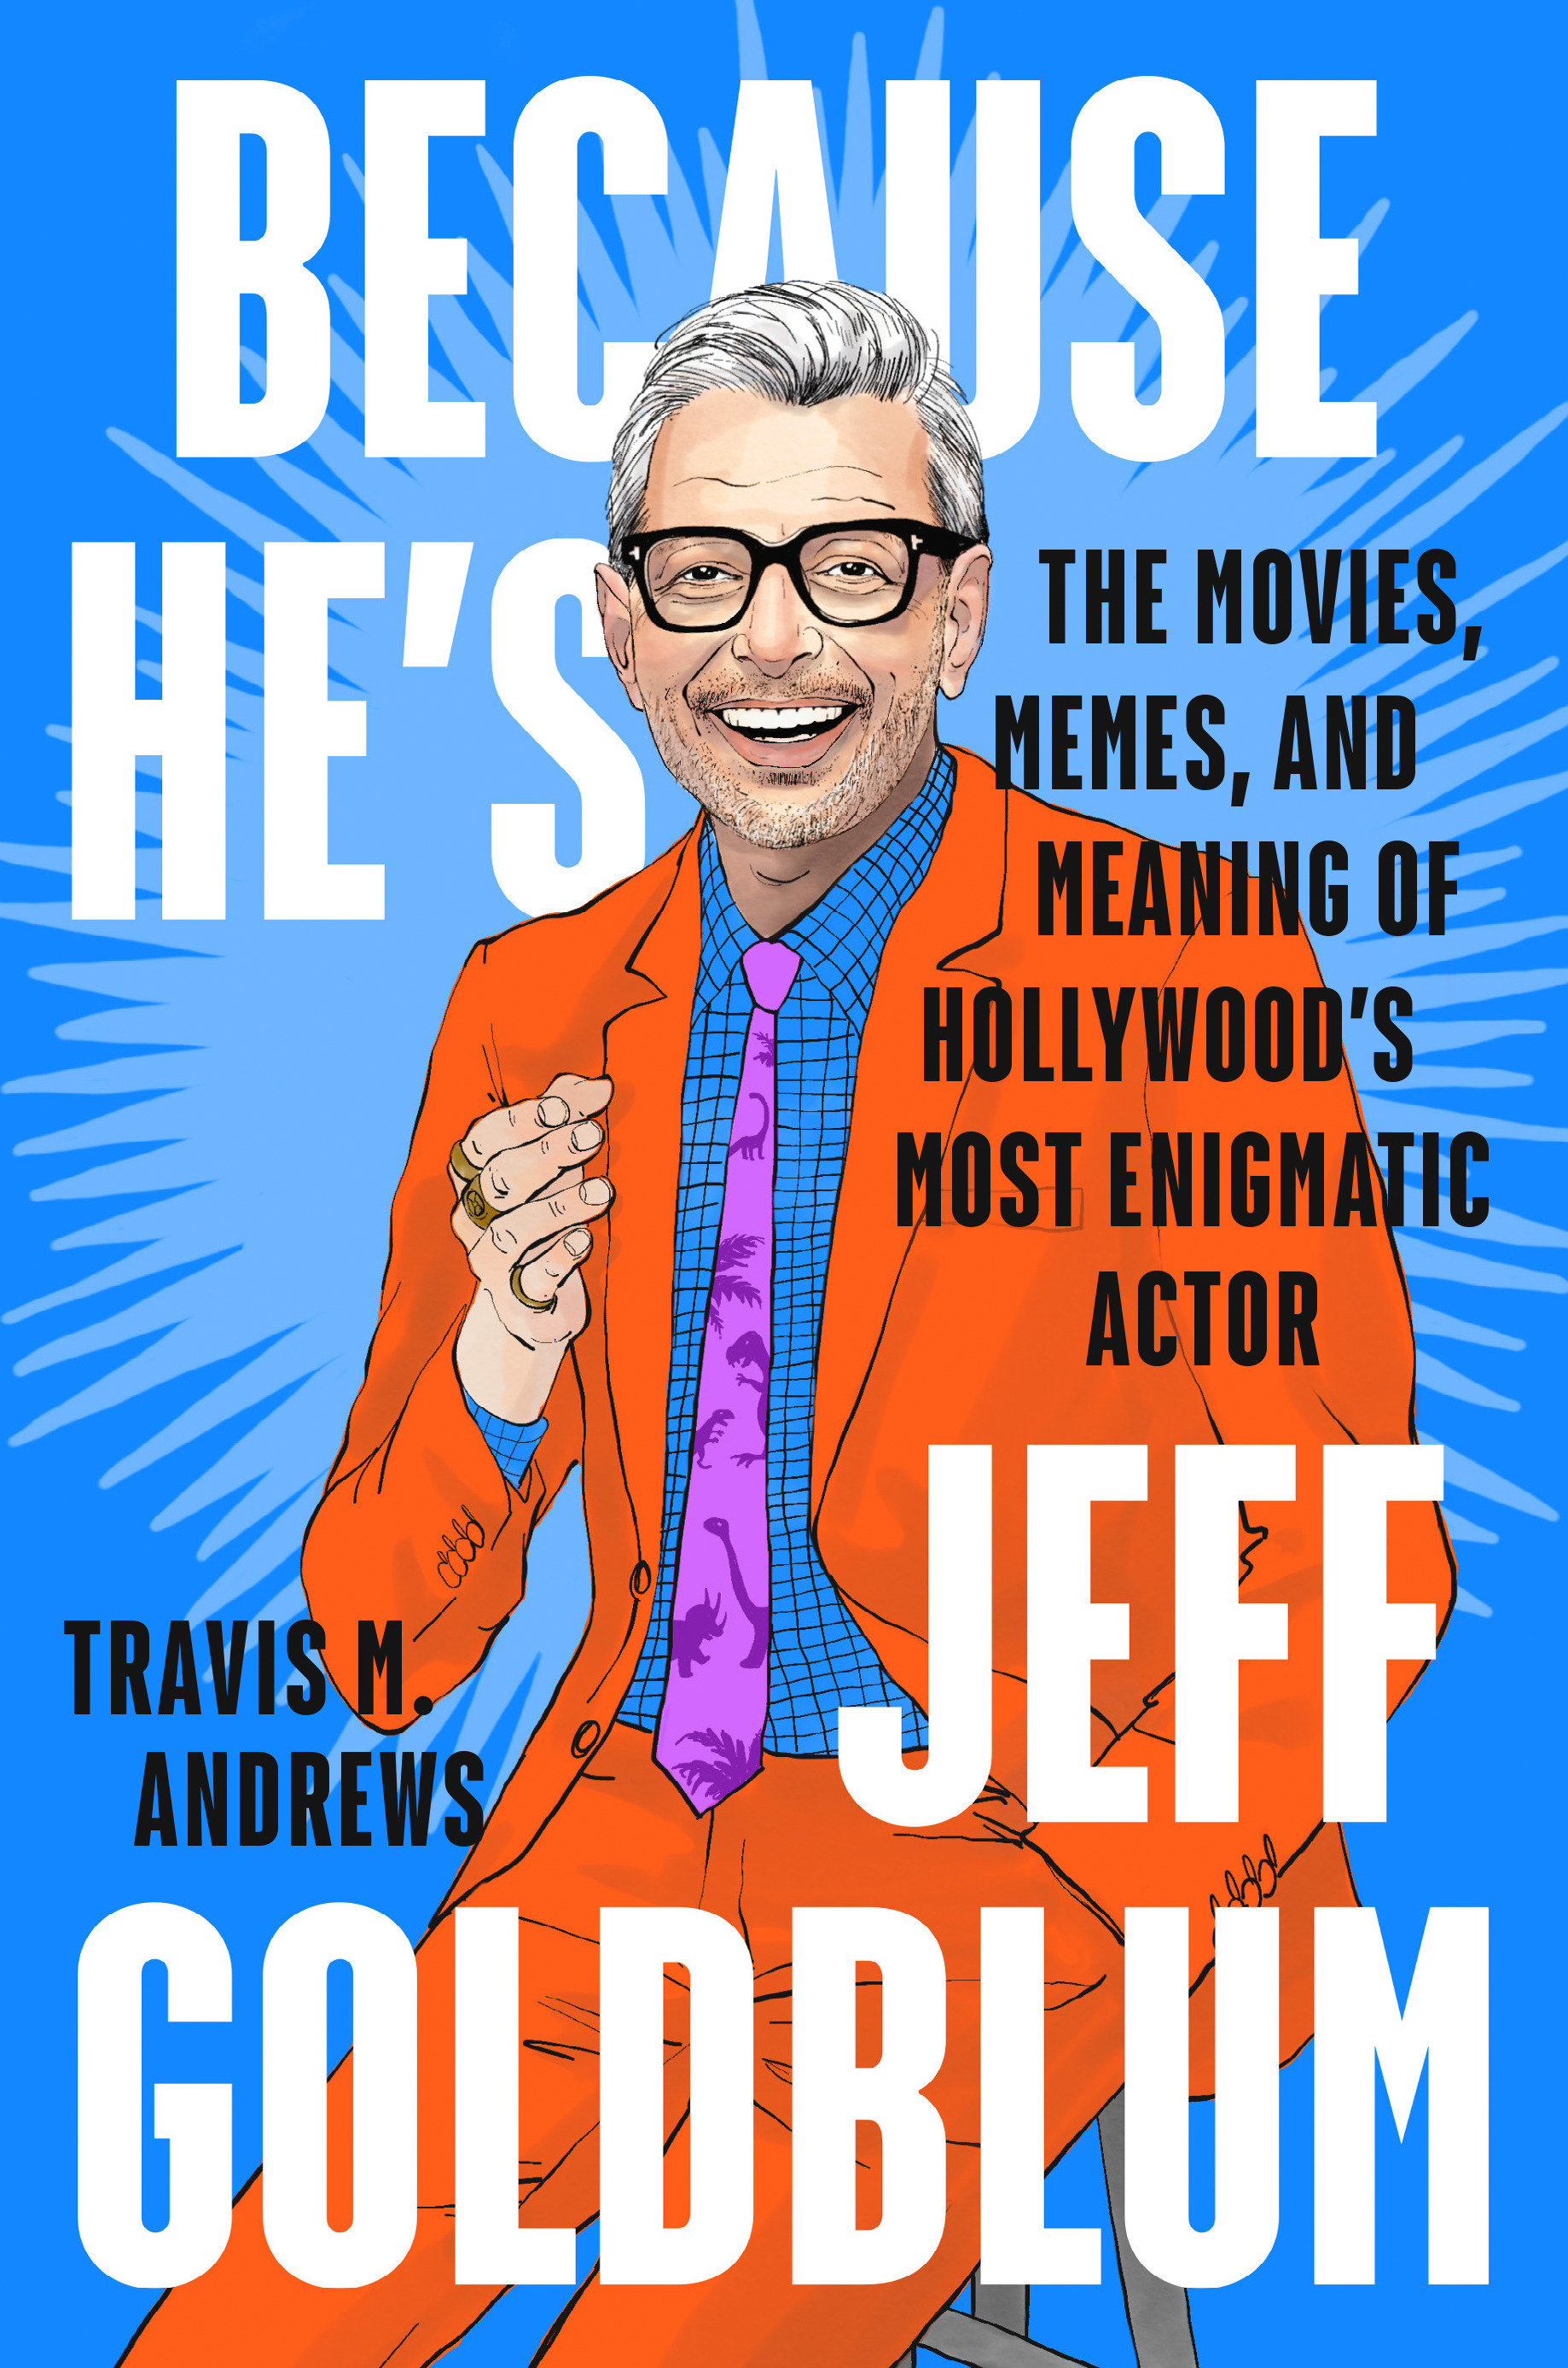 Because He's Jeff Goldblum The Movies, Memes and Meaning of Hollywood's Most Enigmatic Actor